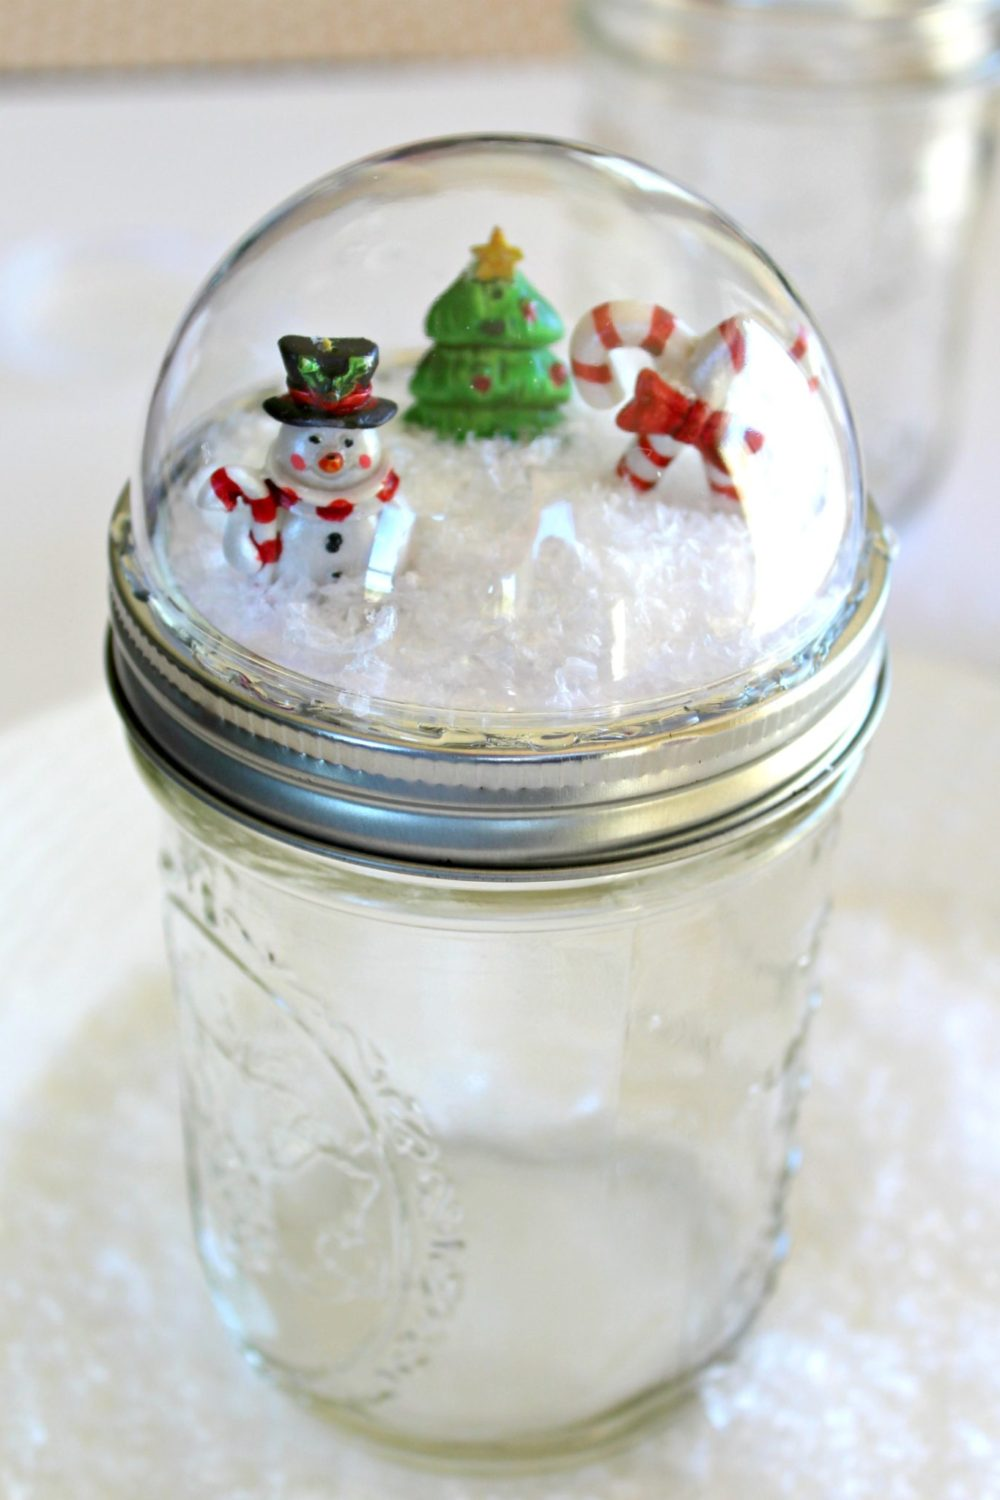 How to Make Christmas Snow Globe